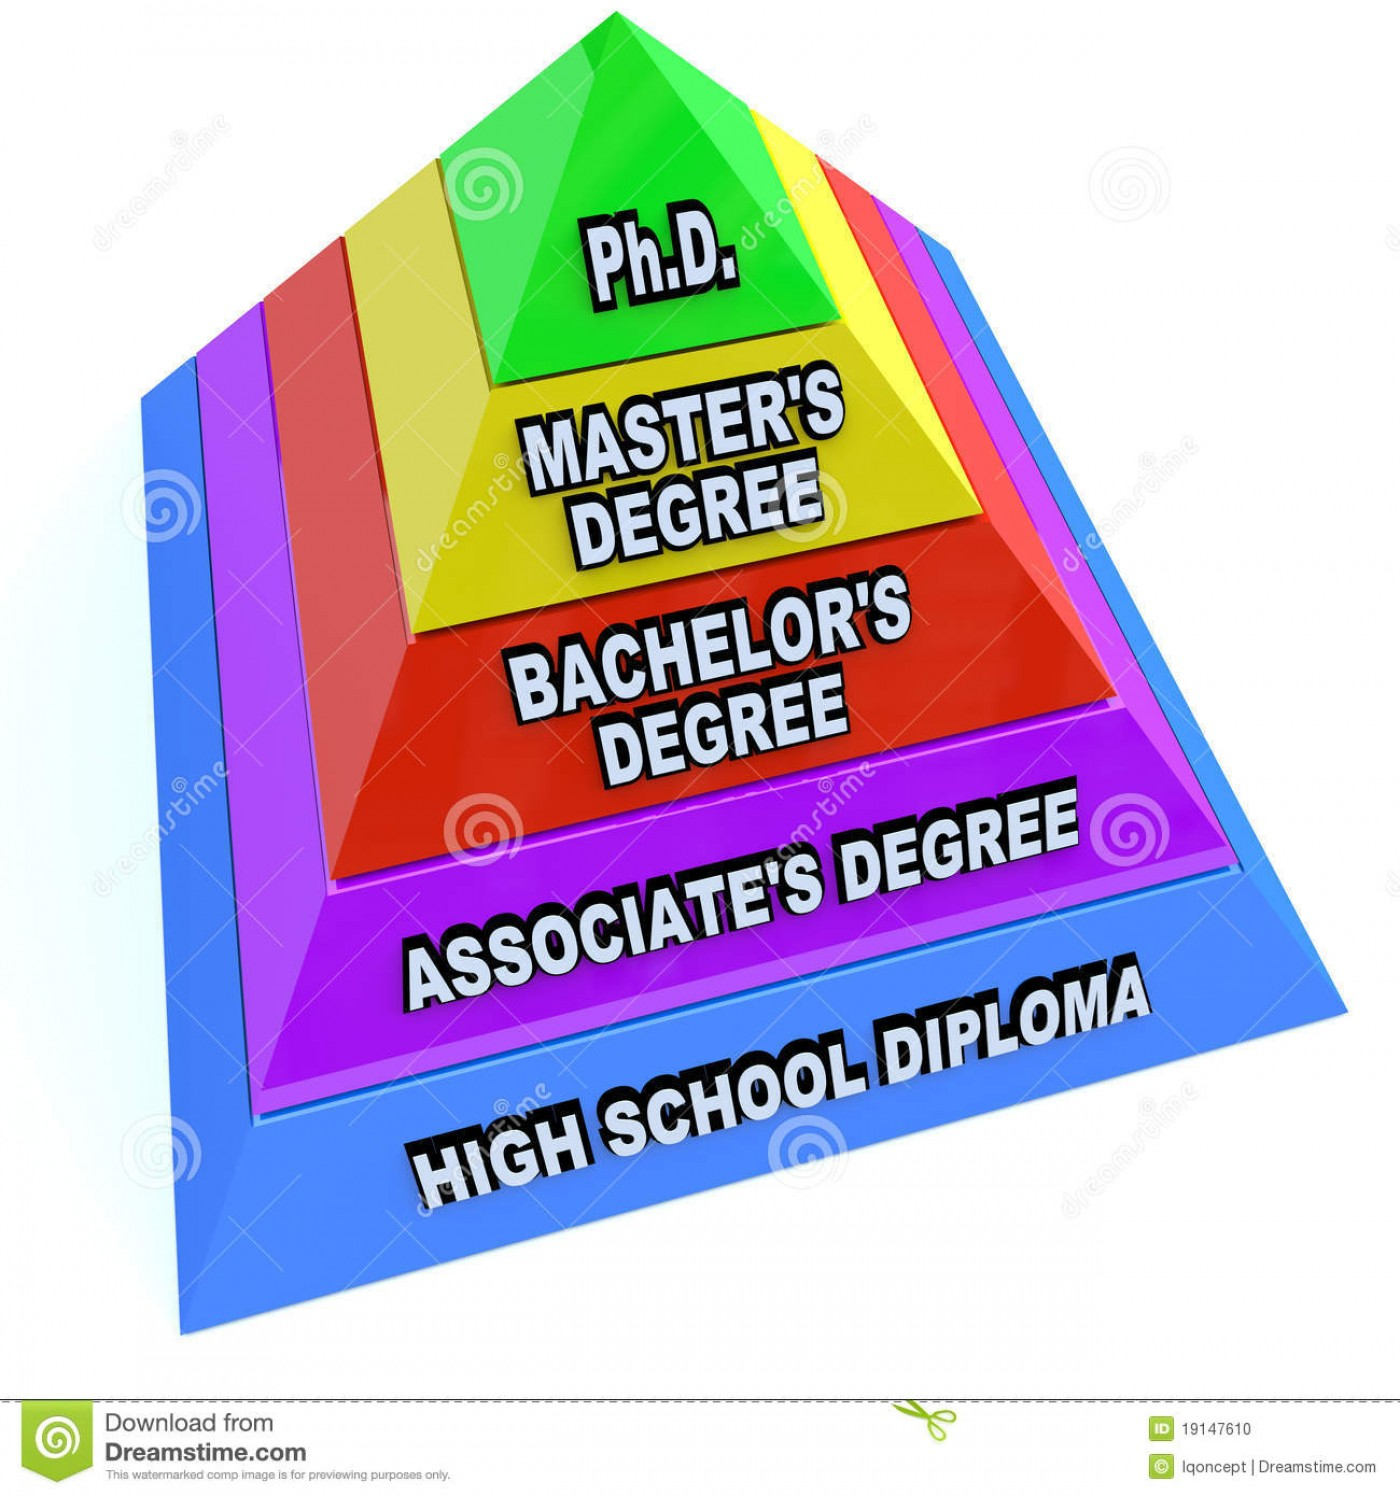 010 Higher Learning Education Degrees Pyramid 123helpme Free Essay Code Excellent 1400